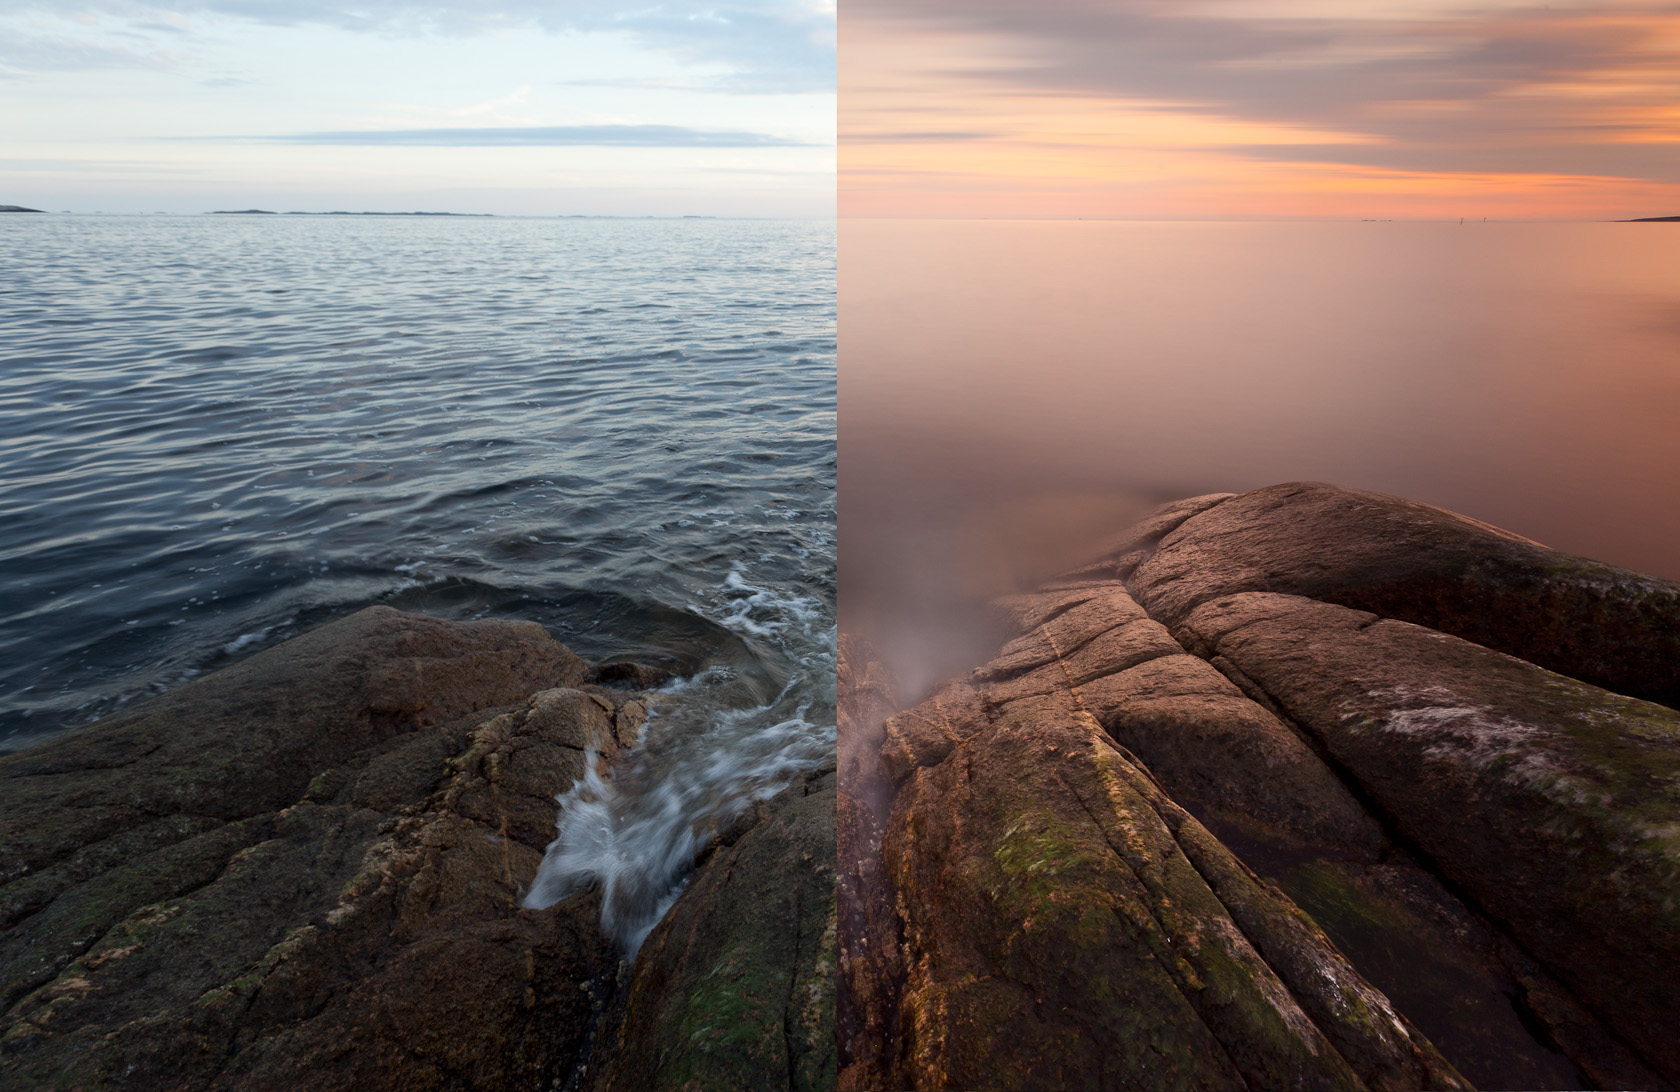 To illustrate the difference of a 10 stop ND filter, I made this image, consisting of a normal exposure (on the left) and an exposure with a 10 stop ND filter (right). Shooting with very heavy ND filters is challenging, but as you can see, the effects can be mesmerizing. Waves are smoothed out, splashed become mist, the light takes on a different character, and in the case of my B+W ND, I get a warm, pinkish tone. Settings. Before: 1/20 sec, f/8, ISO 200 After: 239 sec (4 minutes), f/16, ISO 200